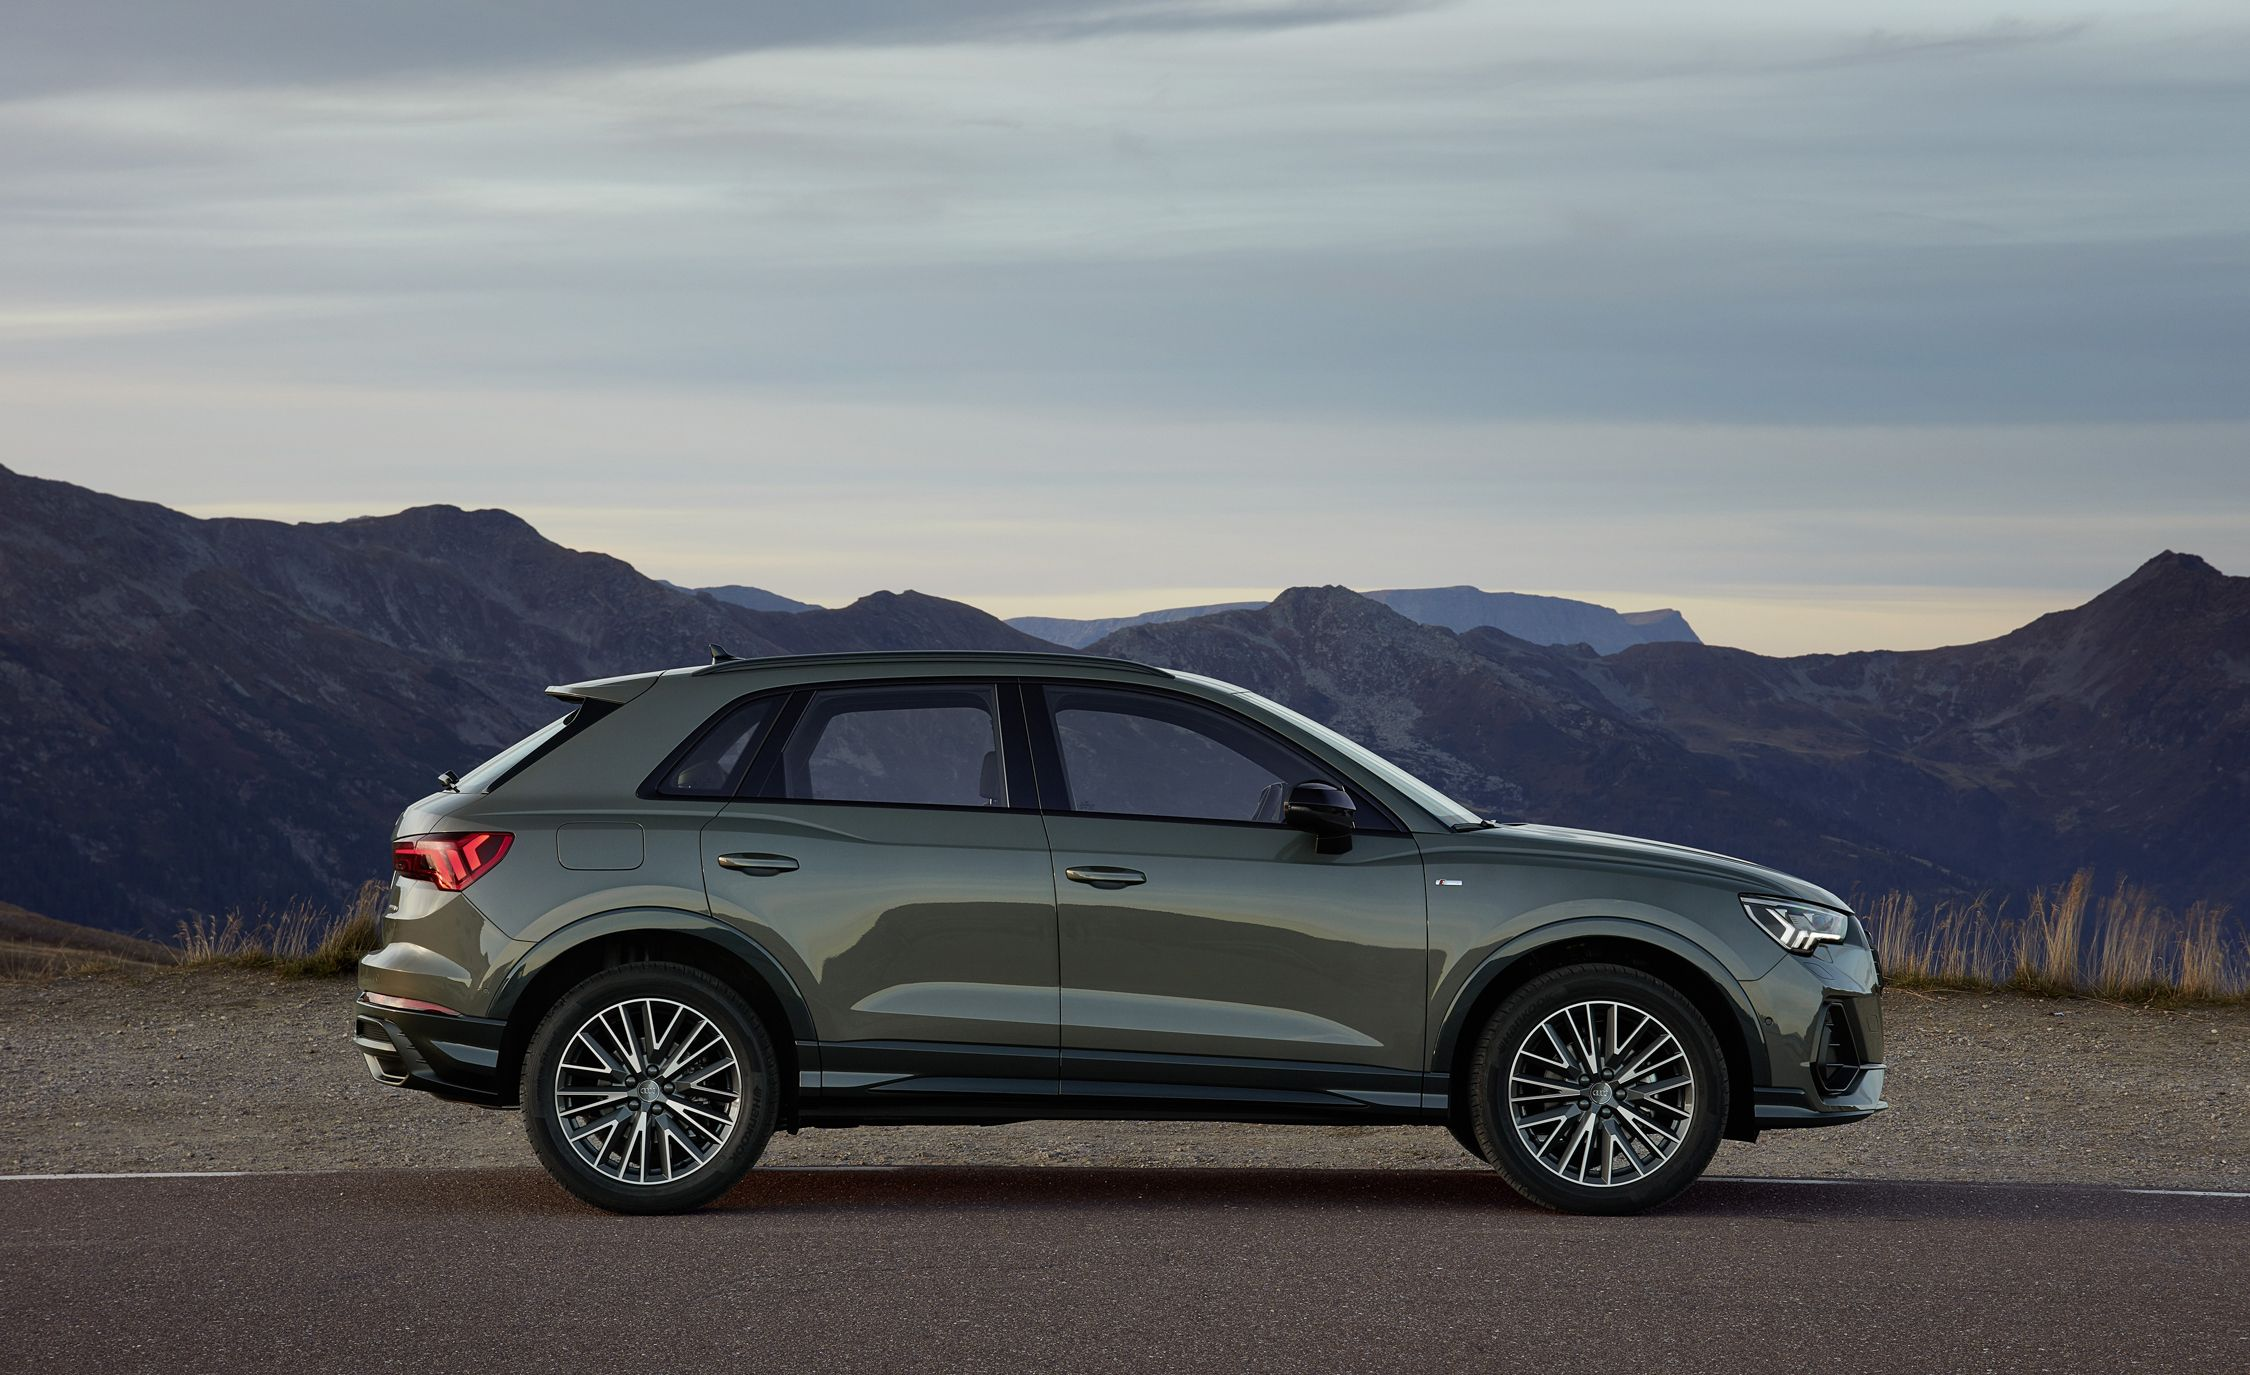 Audi Suv Q3 >> 2019 Audi Q3 Suv Is Larger And Vastly Improved